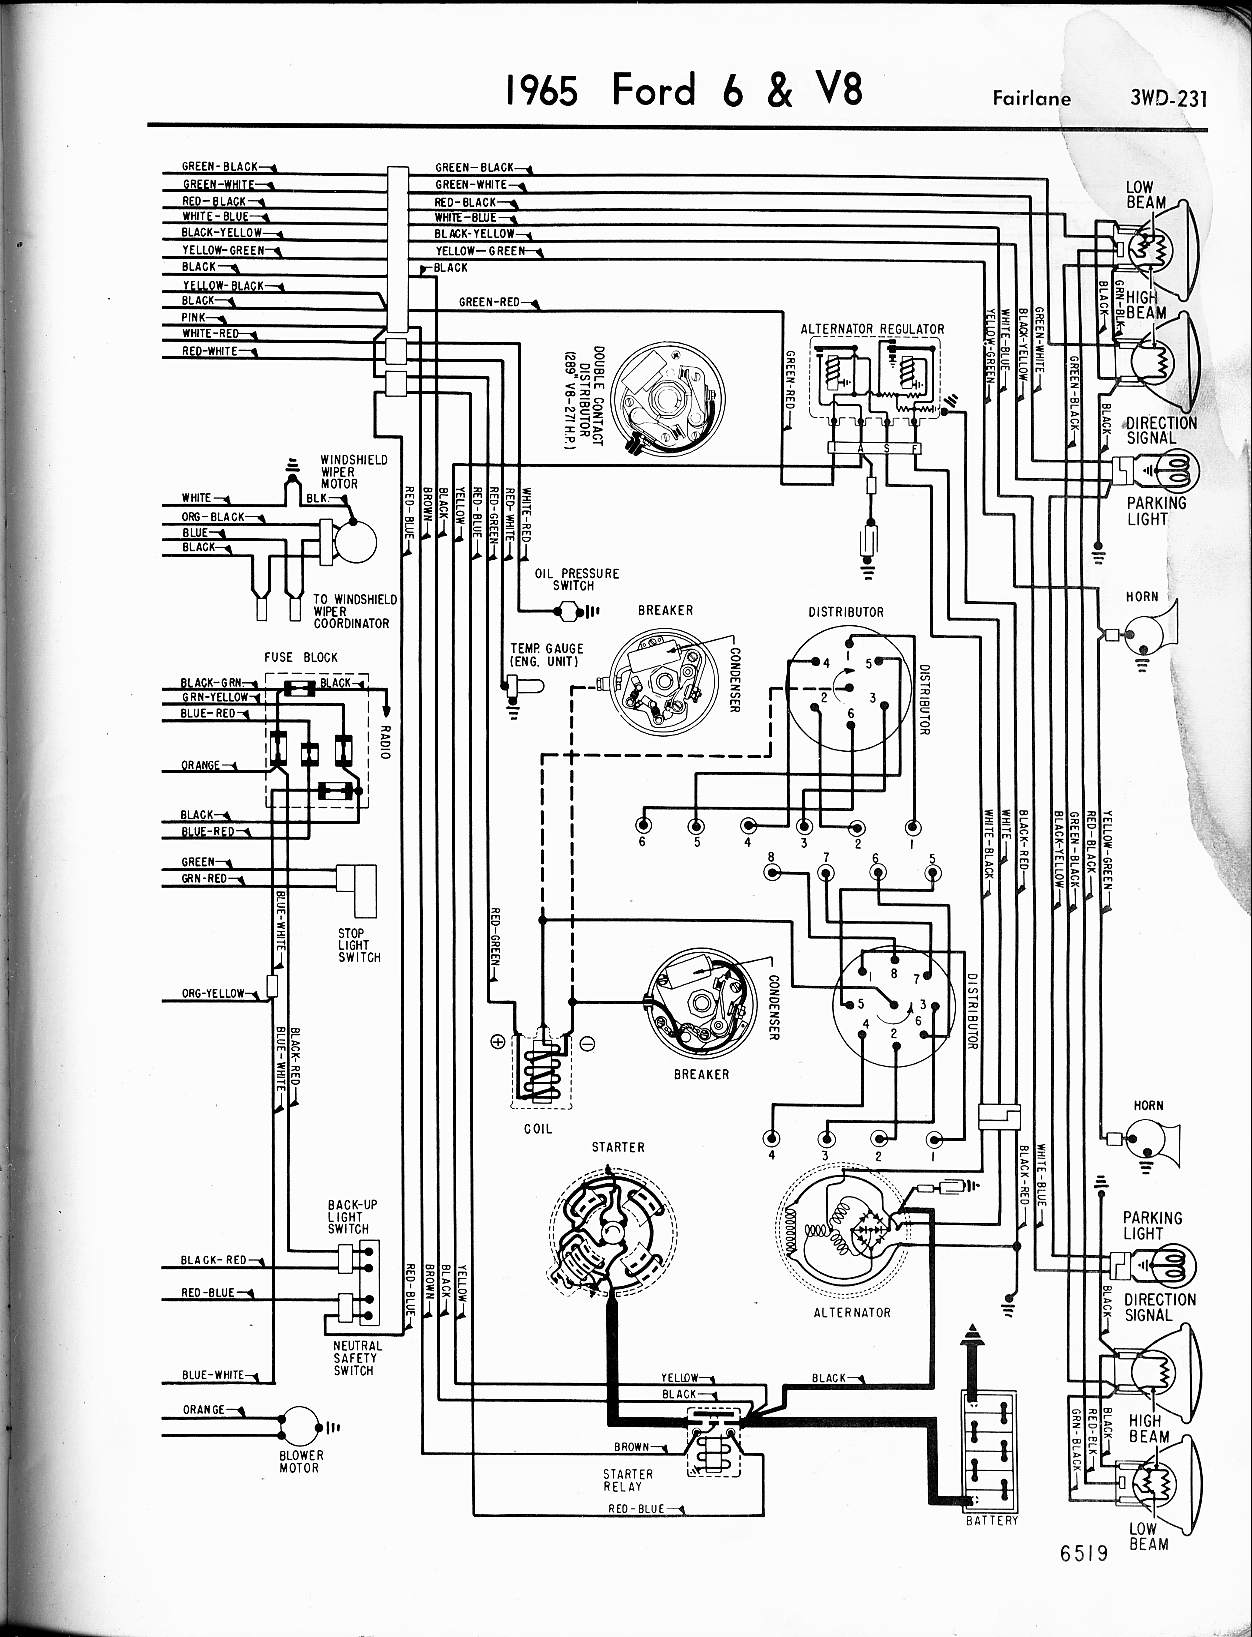 57 65 ford wiring diagrams 65 Fairlane 2 Door Wagon